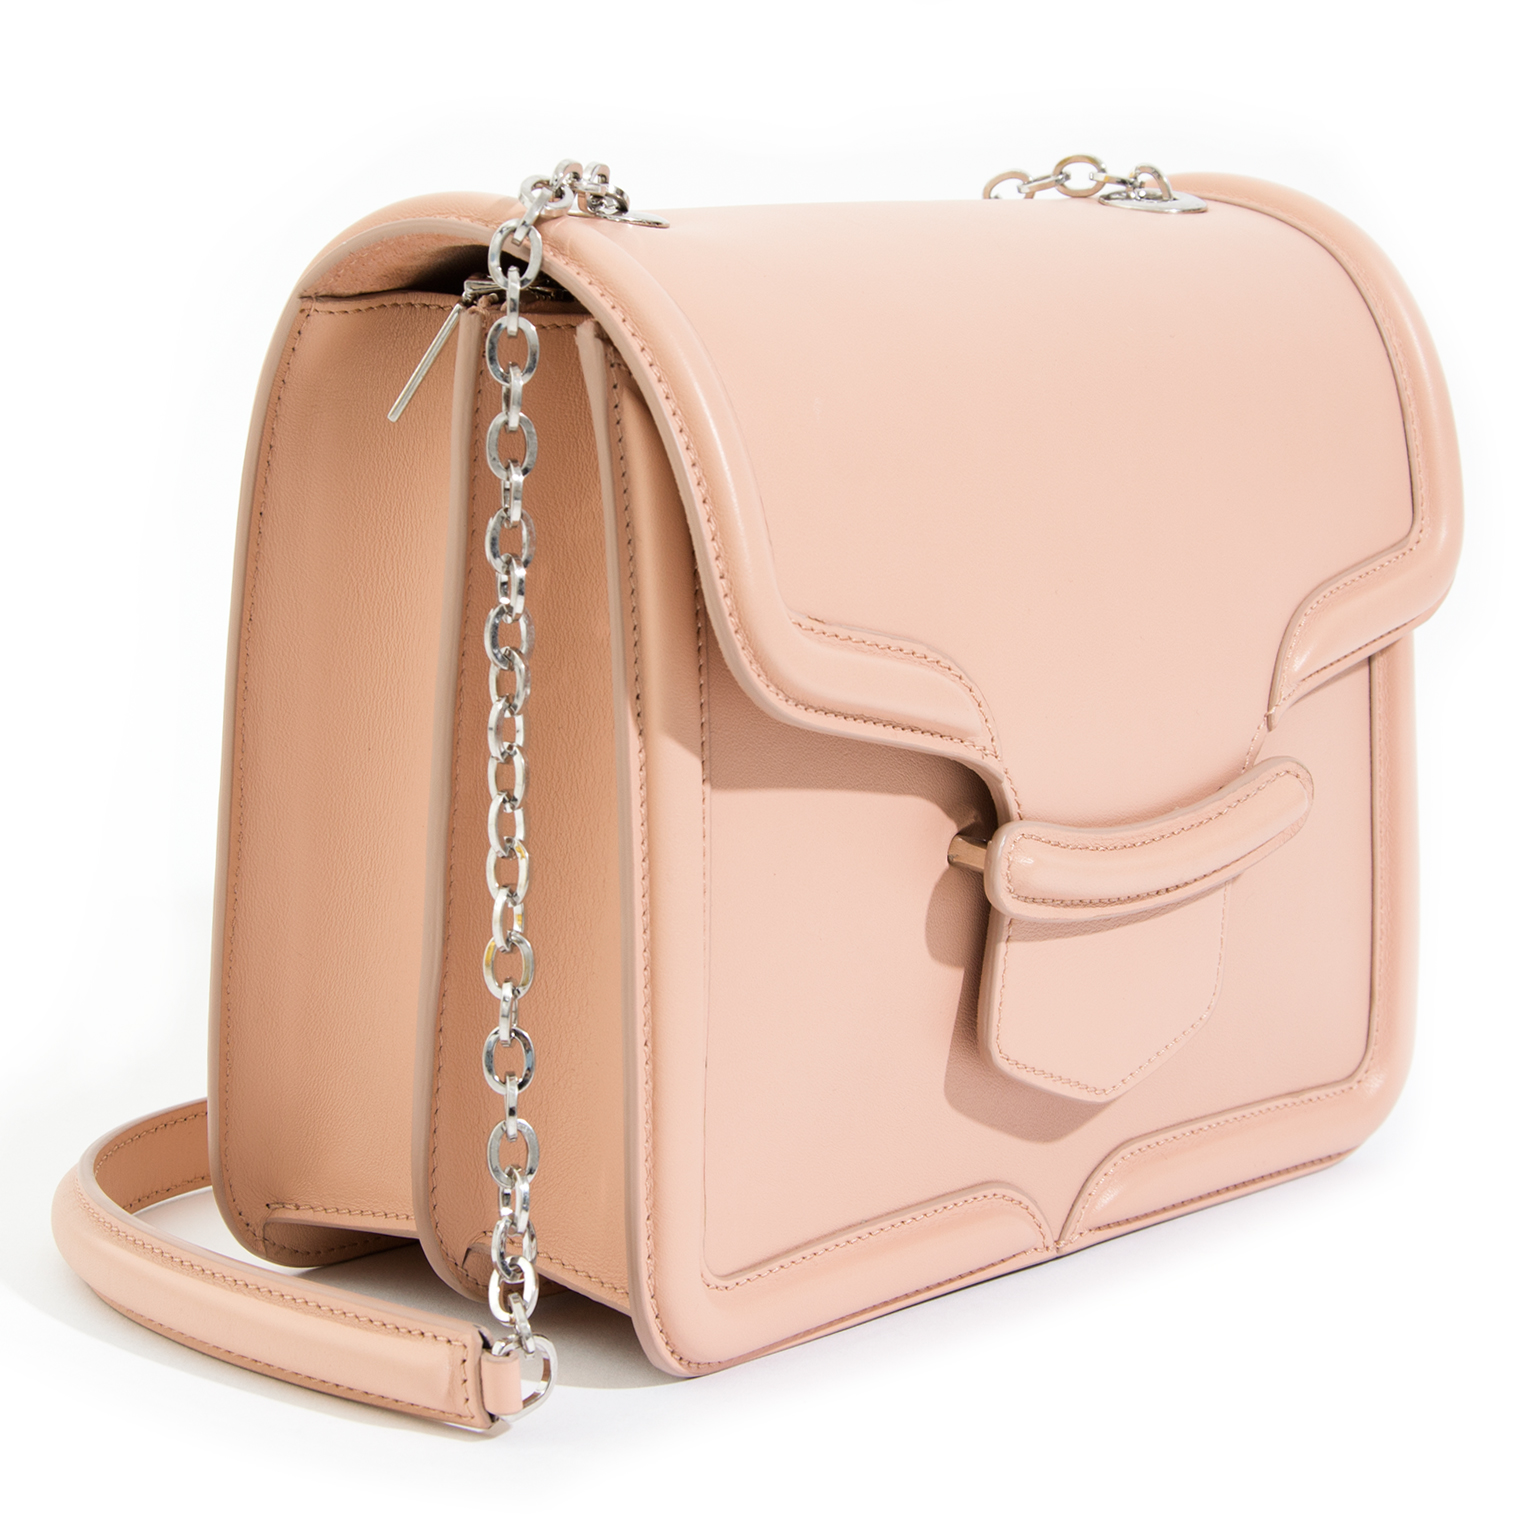 One of Alexander McQueen's classic designs: the Heroine boxy shoudler bag with chain strap, here in a beautiful dusty pastel color 'Blush'.